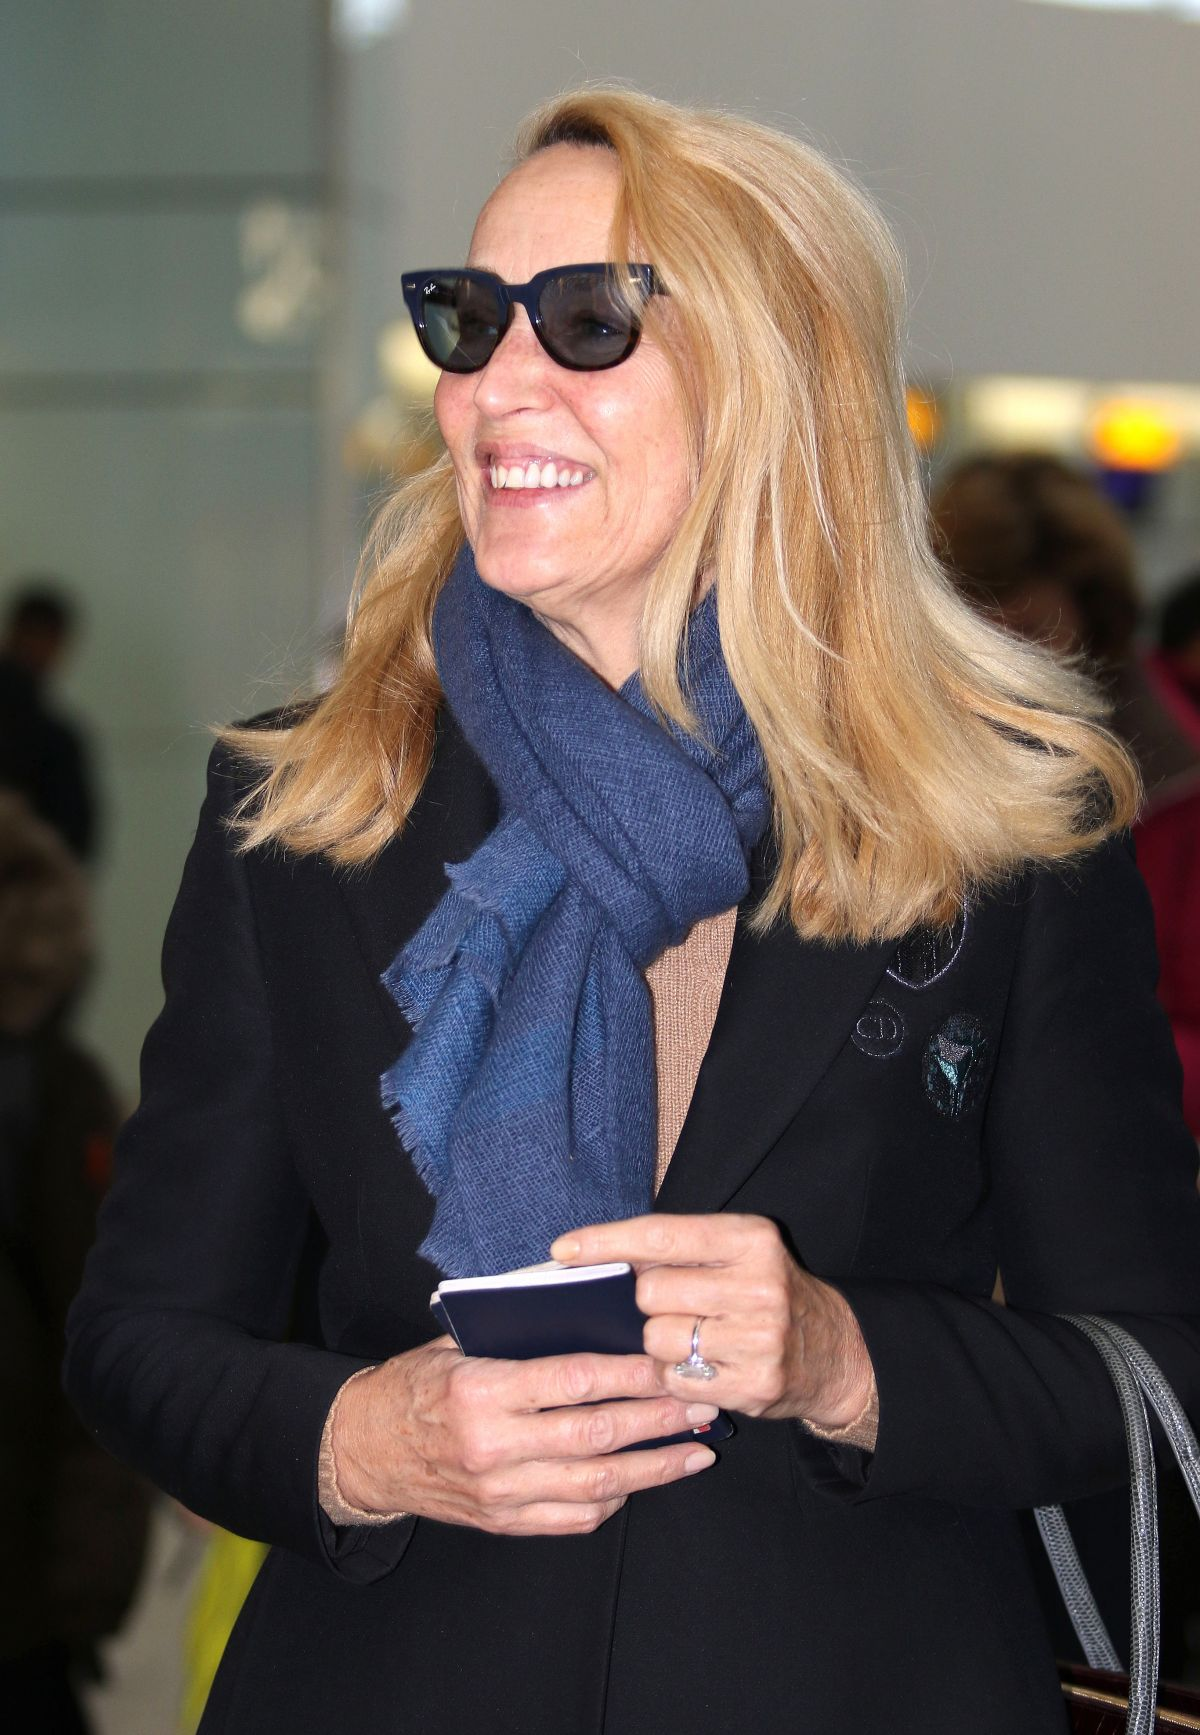 JERRY HALL at Heathrow Airport in London 02/12/2016